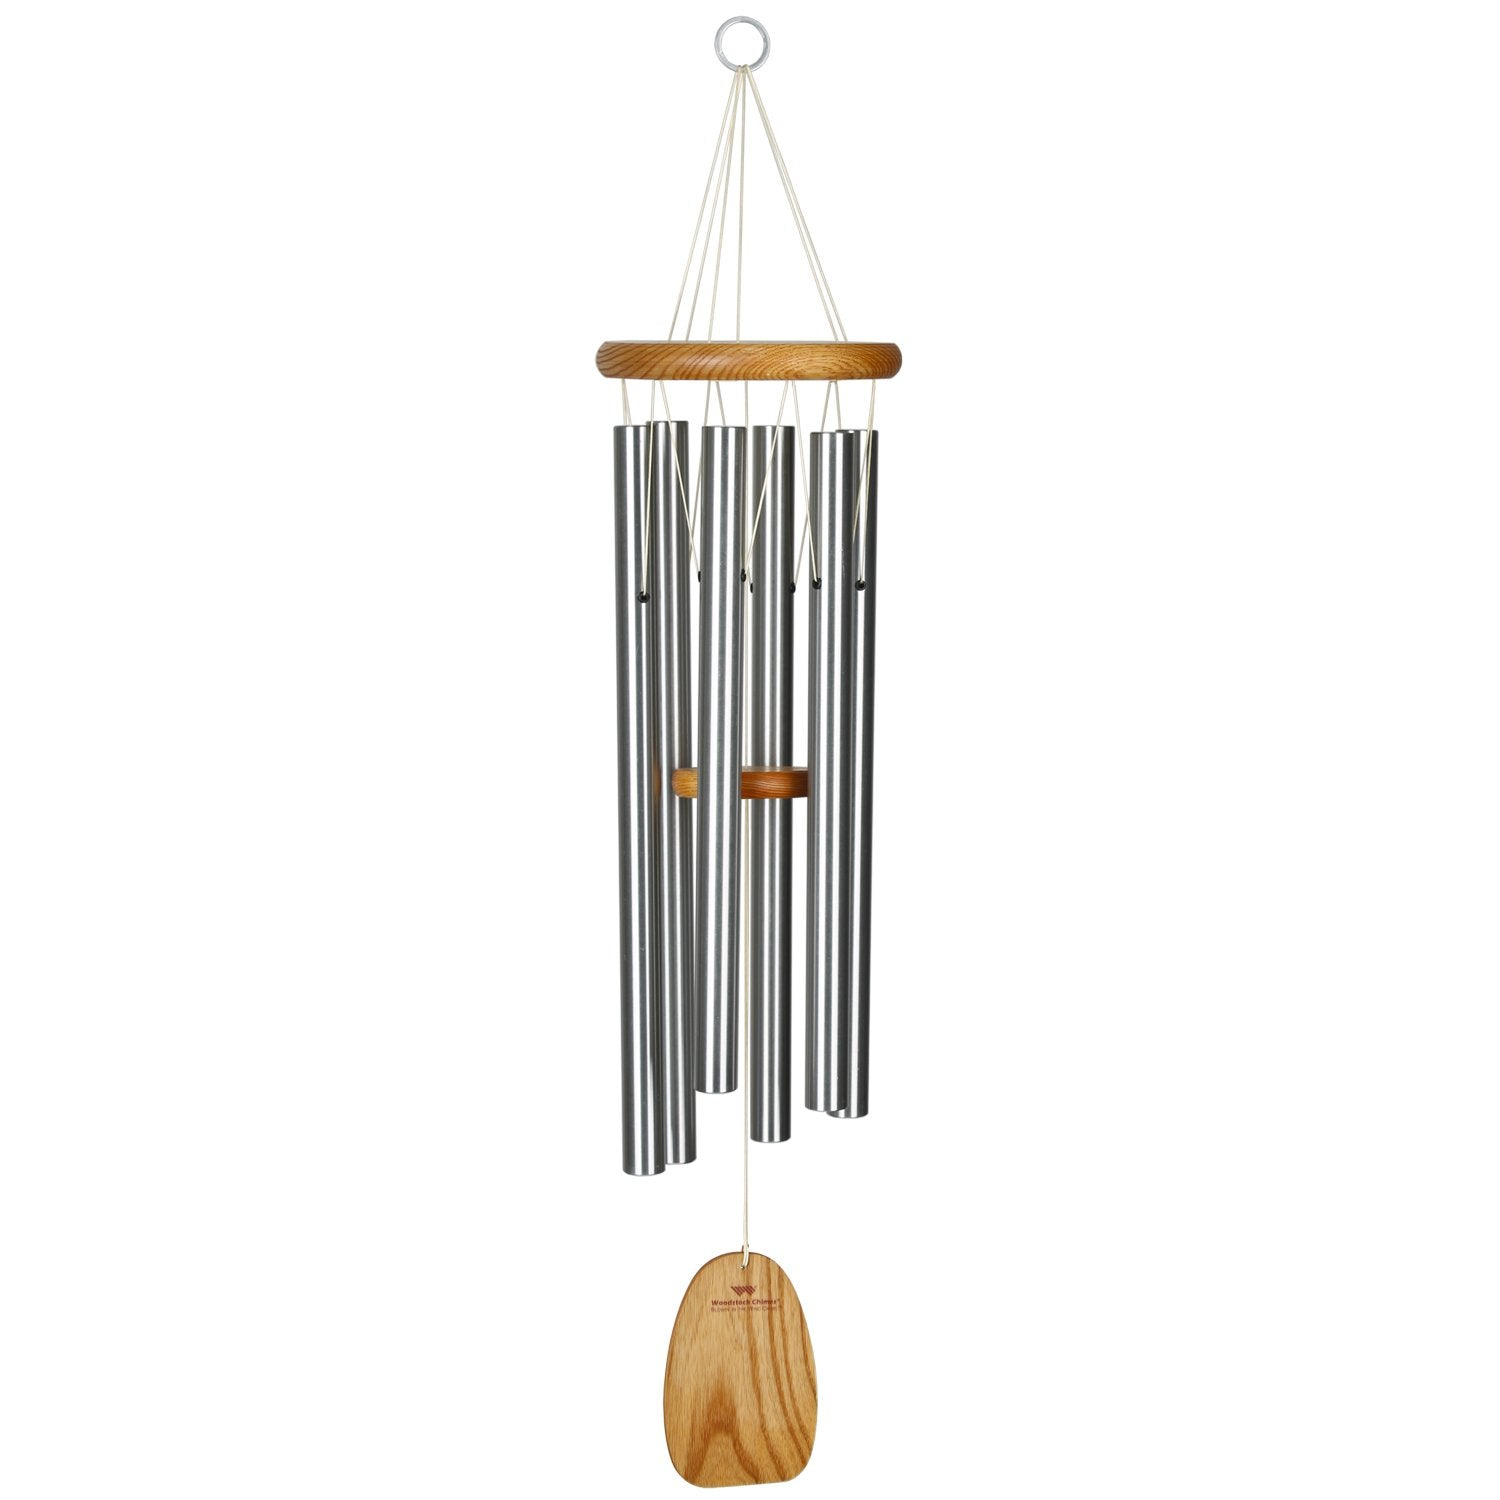 Blowin' In The Wind Chime full product image